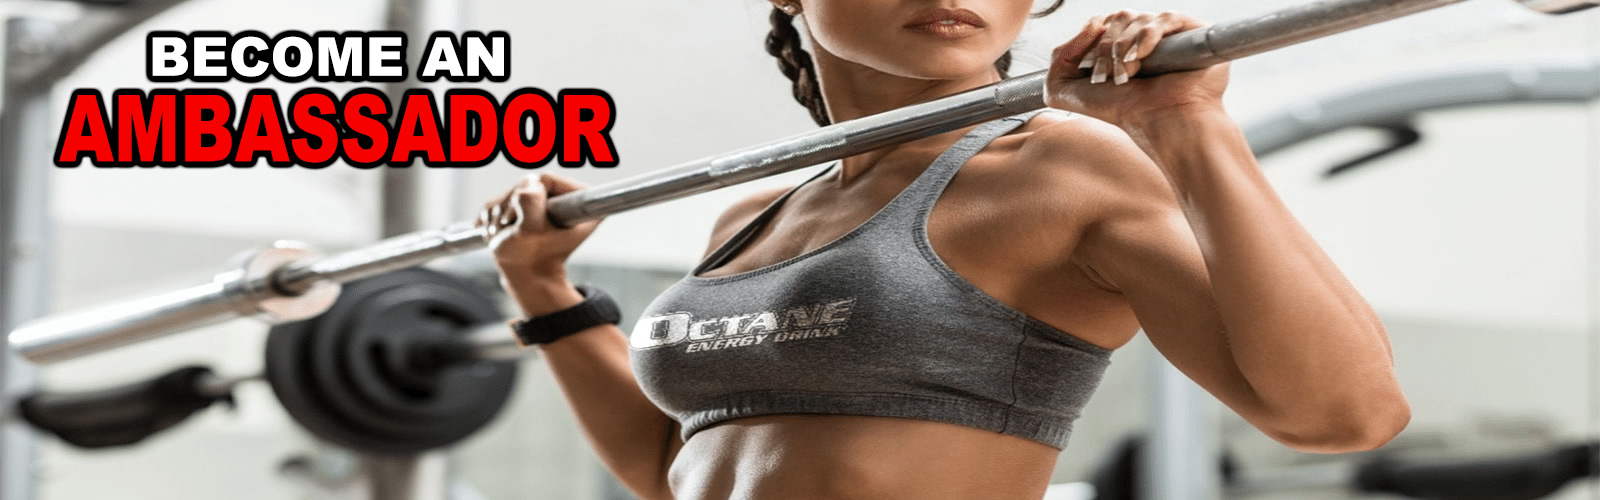 ProSport Nutrition Ambassador Program